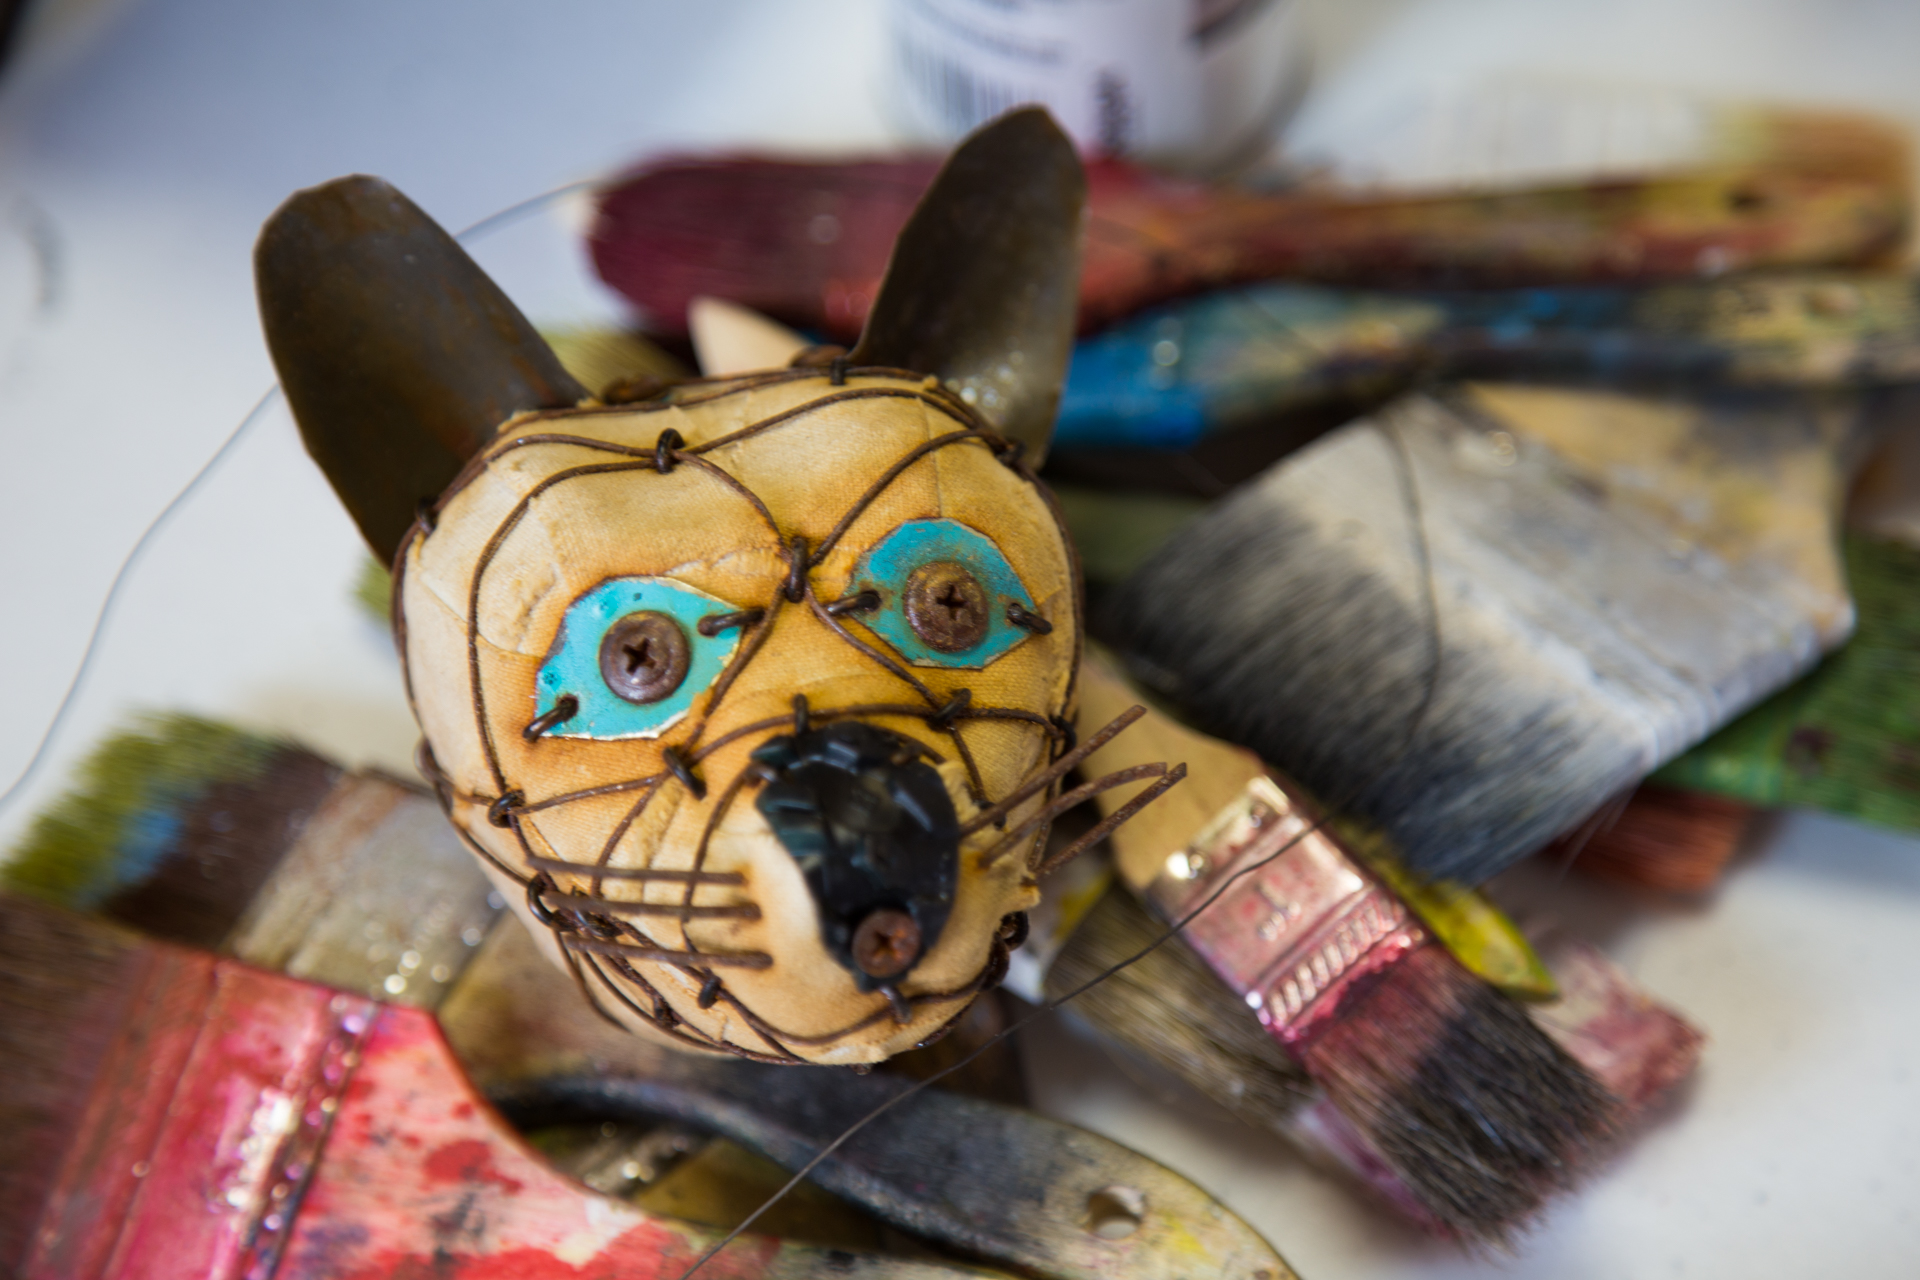 ... and a completed head, wrapped in wire that was then rusted, with Trish's brushes as a lovely backdrop!